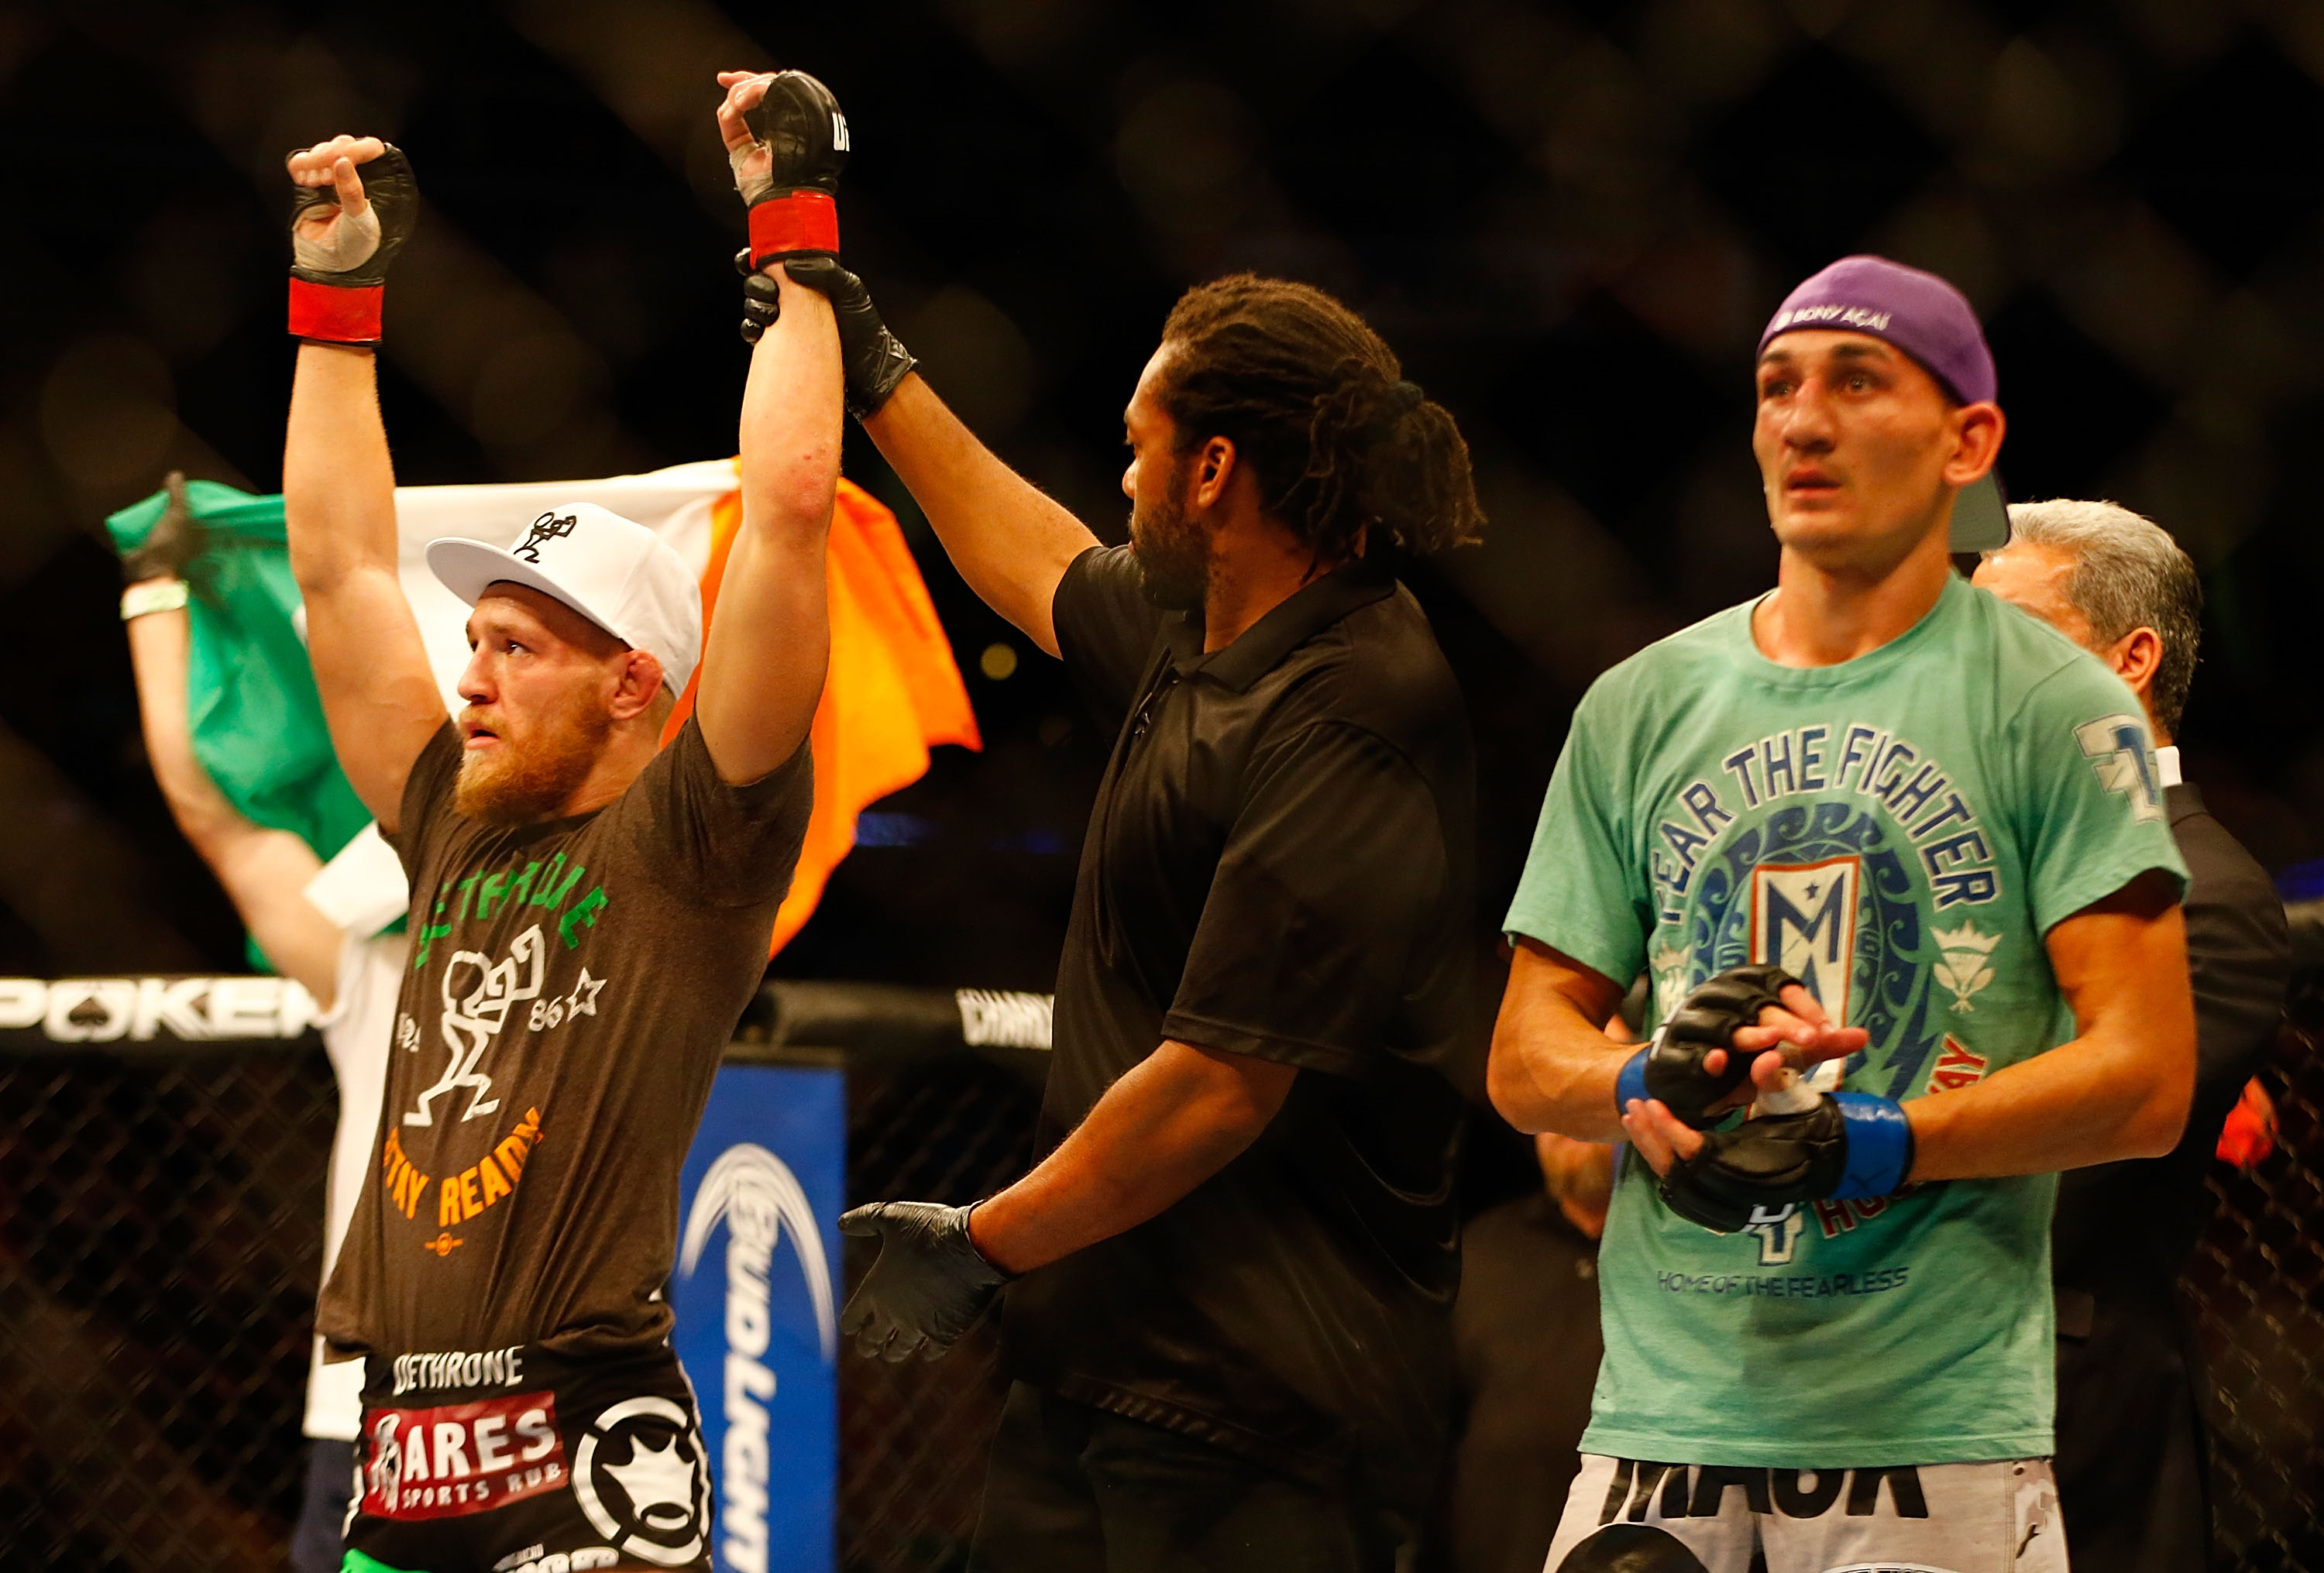 c30765858d3 Conor McGregor and Max Holloway feud on Twitter about 2013 UFC fight ...